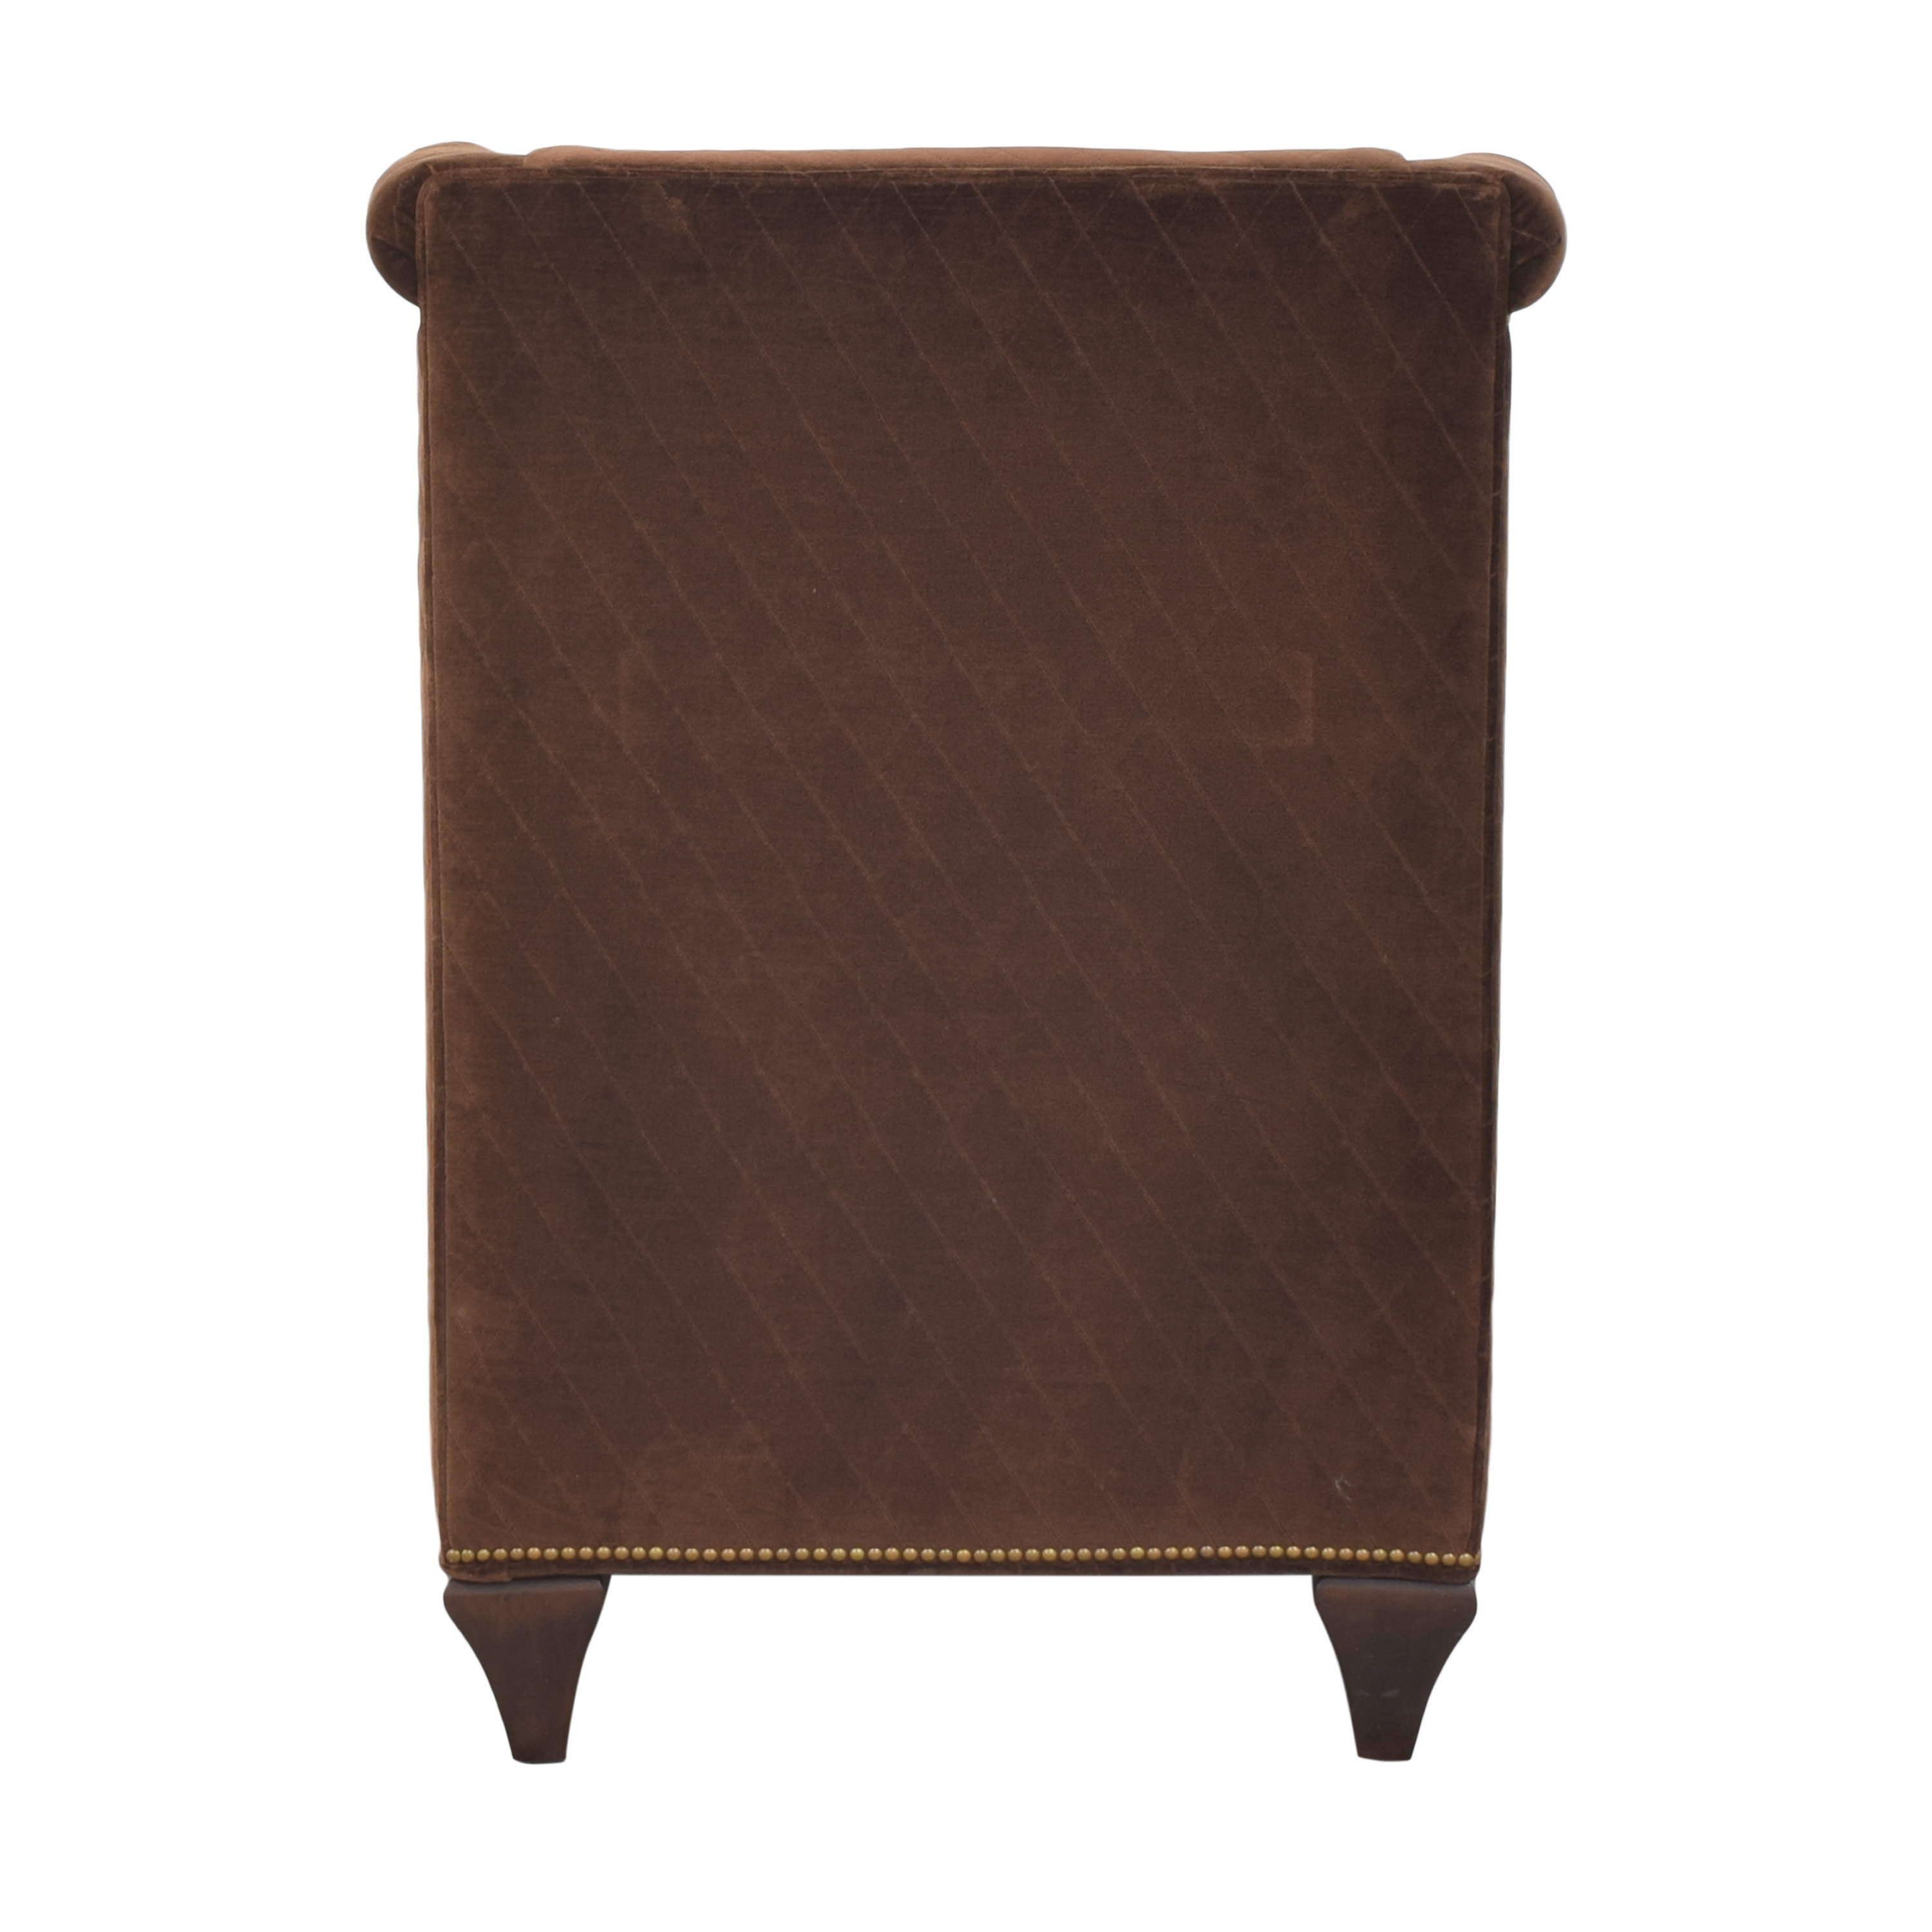 Stanford Furniture Stanford Furniture Blane Accent Chair Chairs